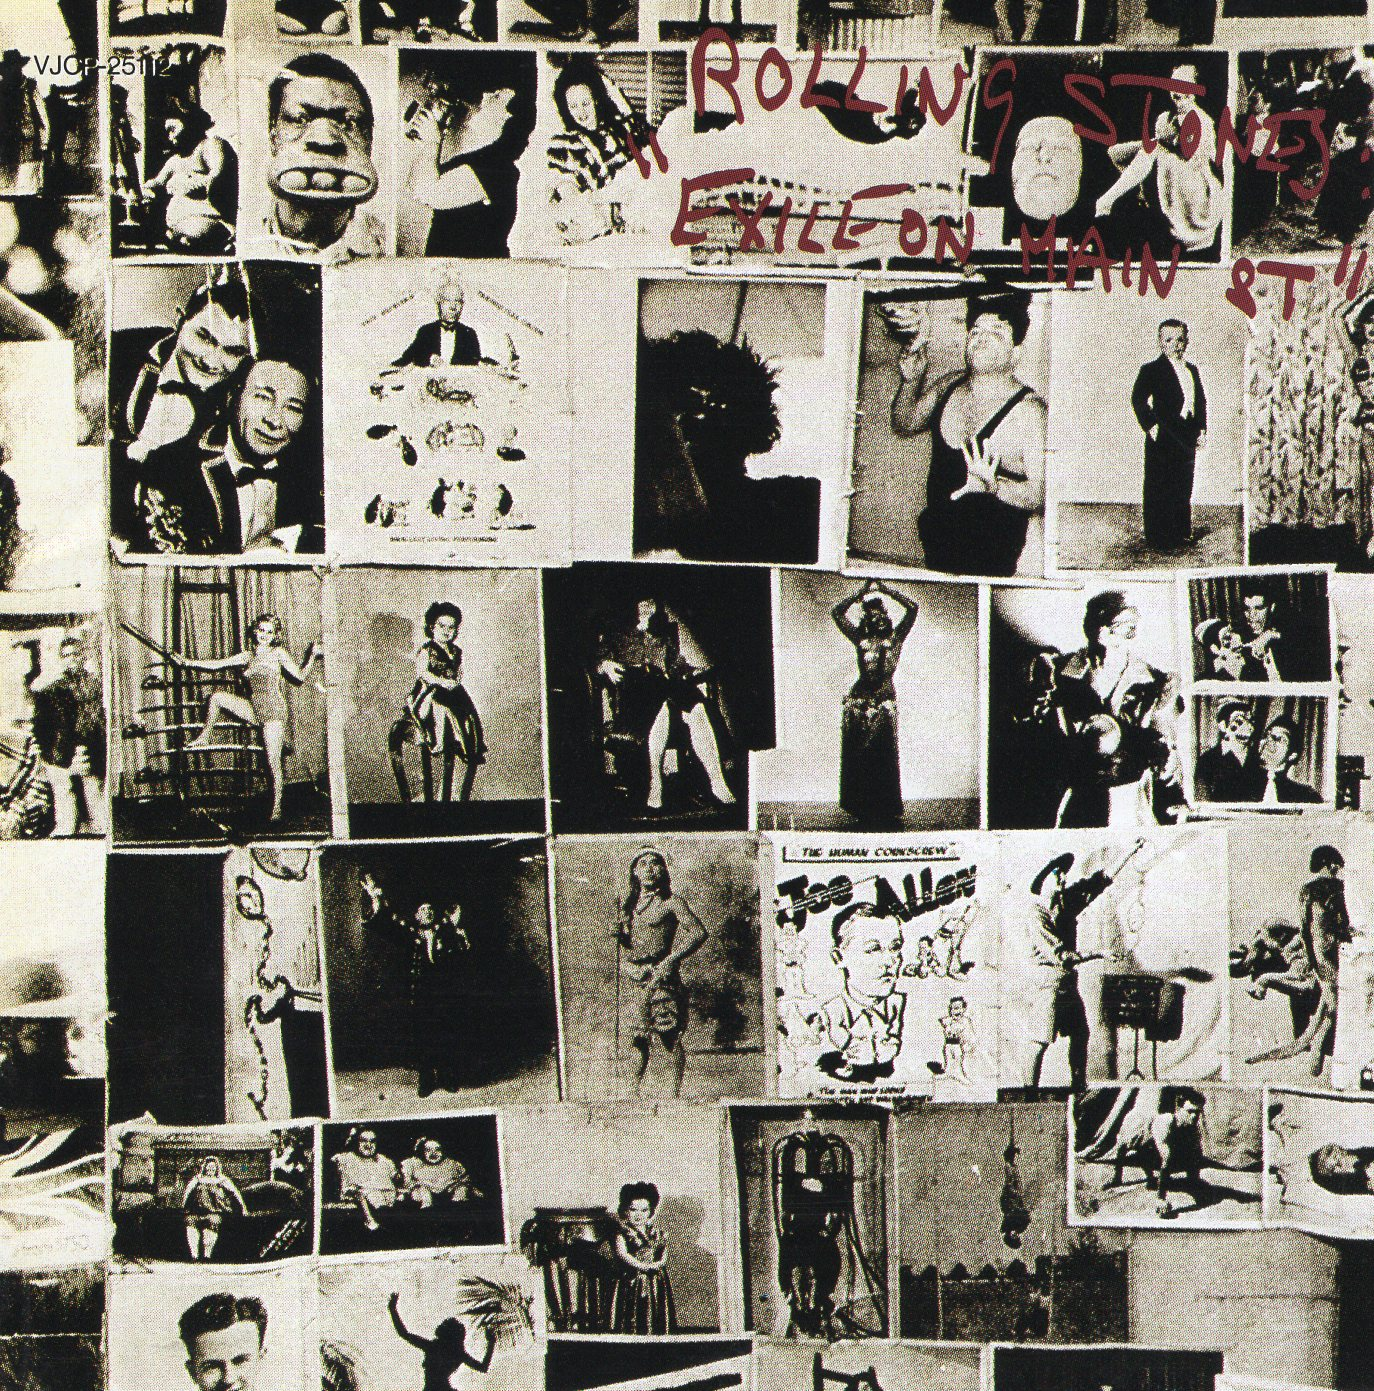 """Exile on Main St."" The Rolling Stones"